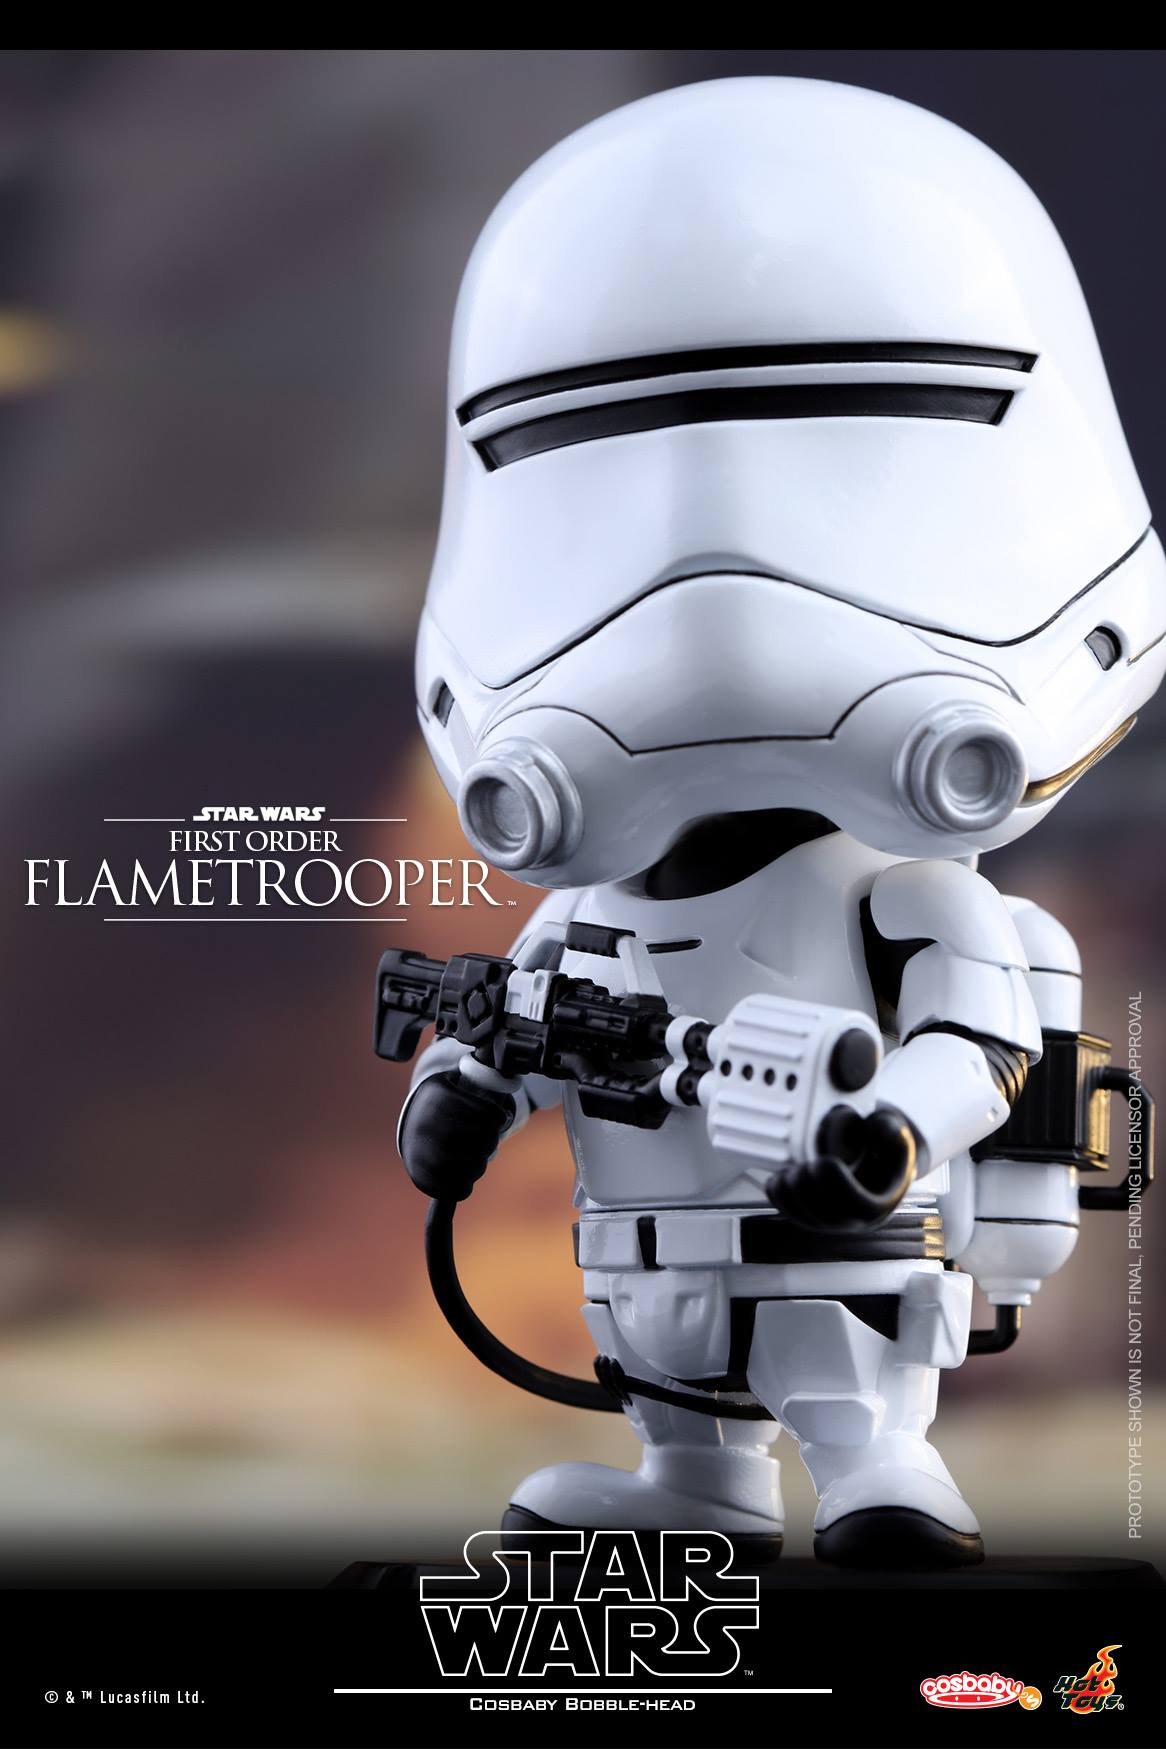 Star Wars Cosbaby Bobbleheads by Hot Toys - The Toyark - News